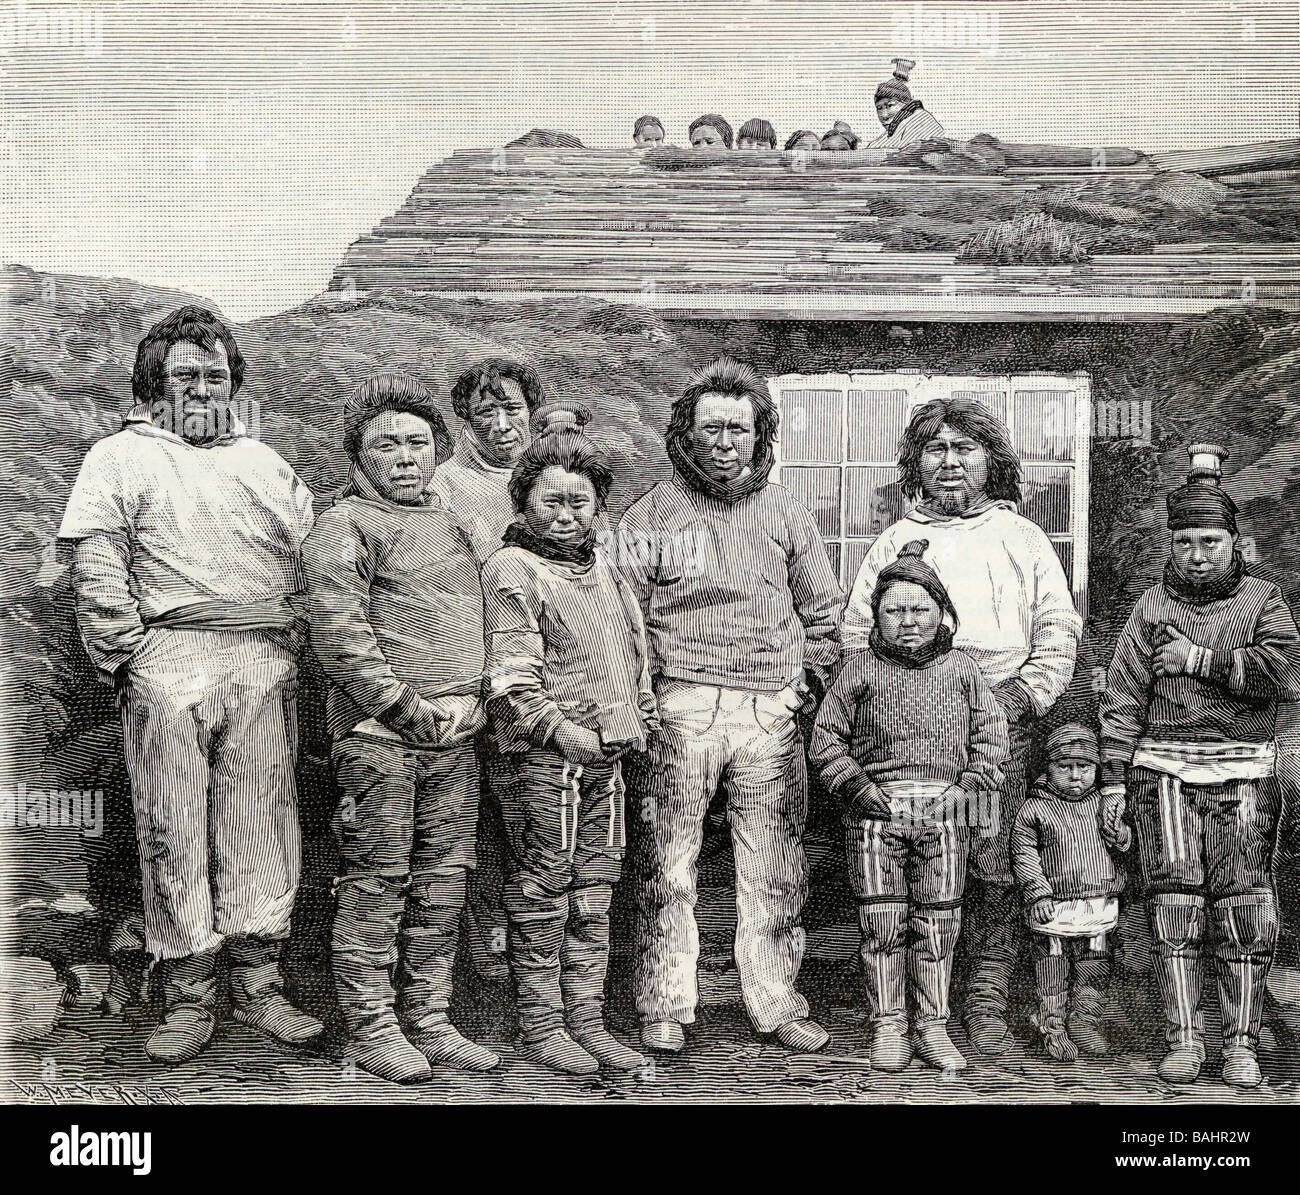 An Eskimo Family Engraved from a 19th century photograph from the book The English Illustrated Magazine 1891 1892 - Stock Image